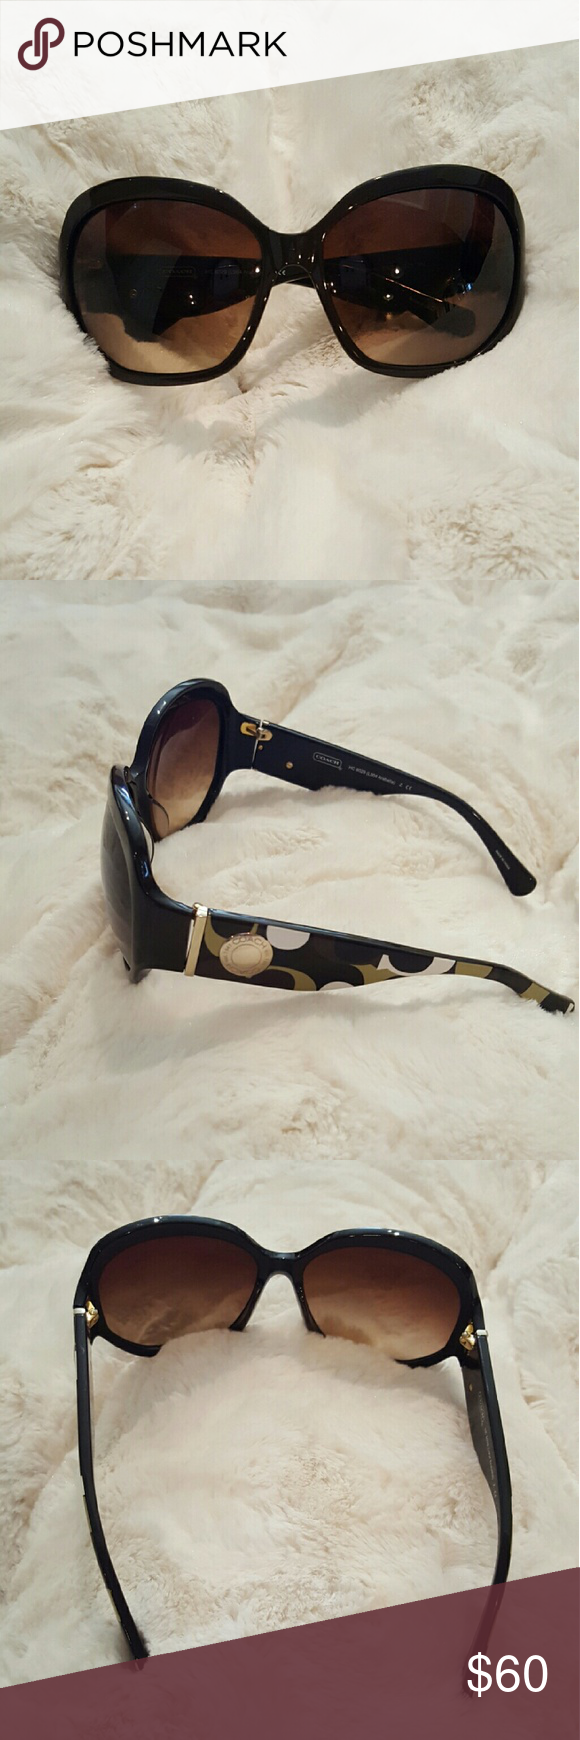 7ed69c1228965 Coach Arabella Sunglasses Brown Authentic Coach sunglasses. Used but look  like new. Shield your eyes from the sun s harsh UV rays with these schmancy  ...